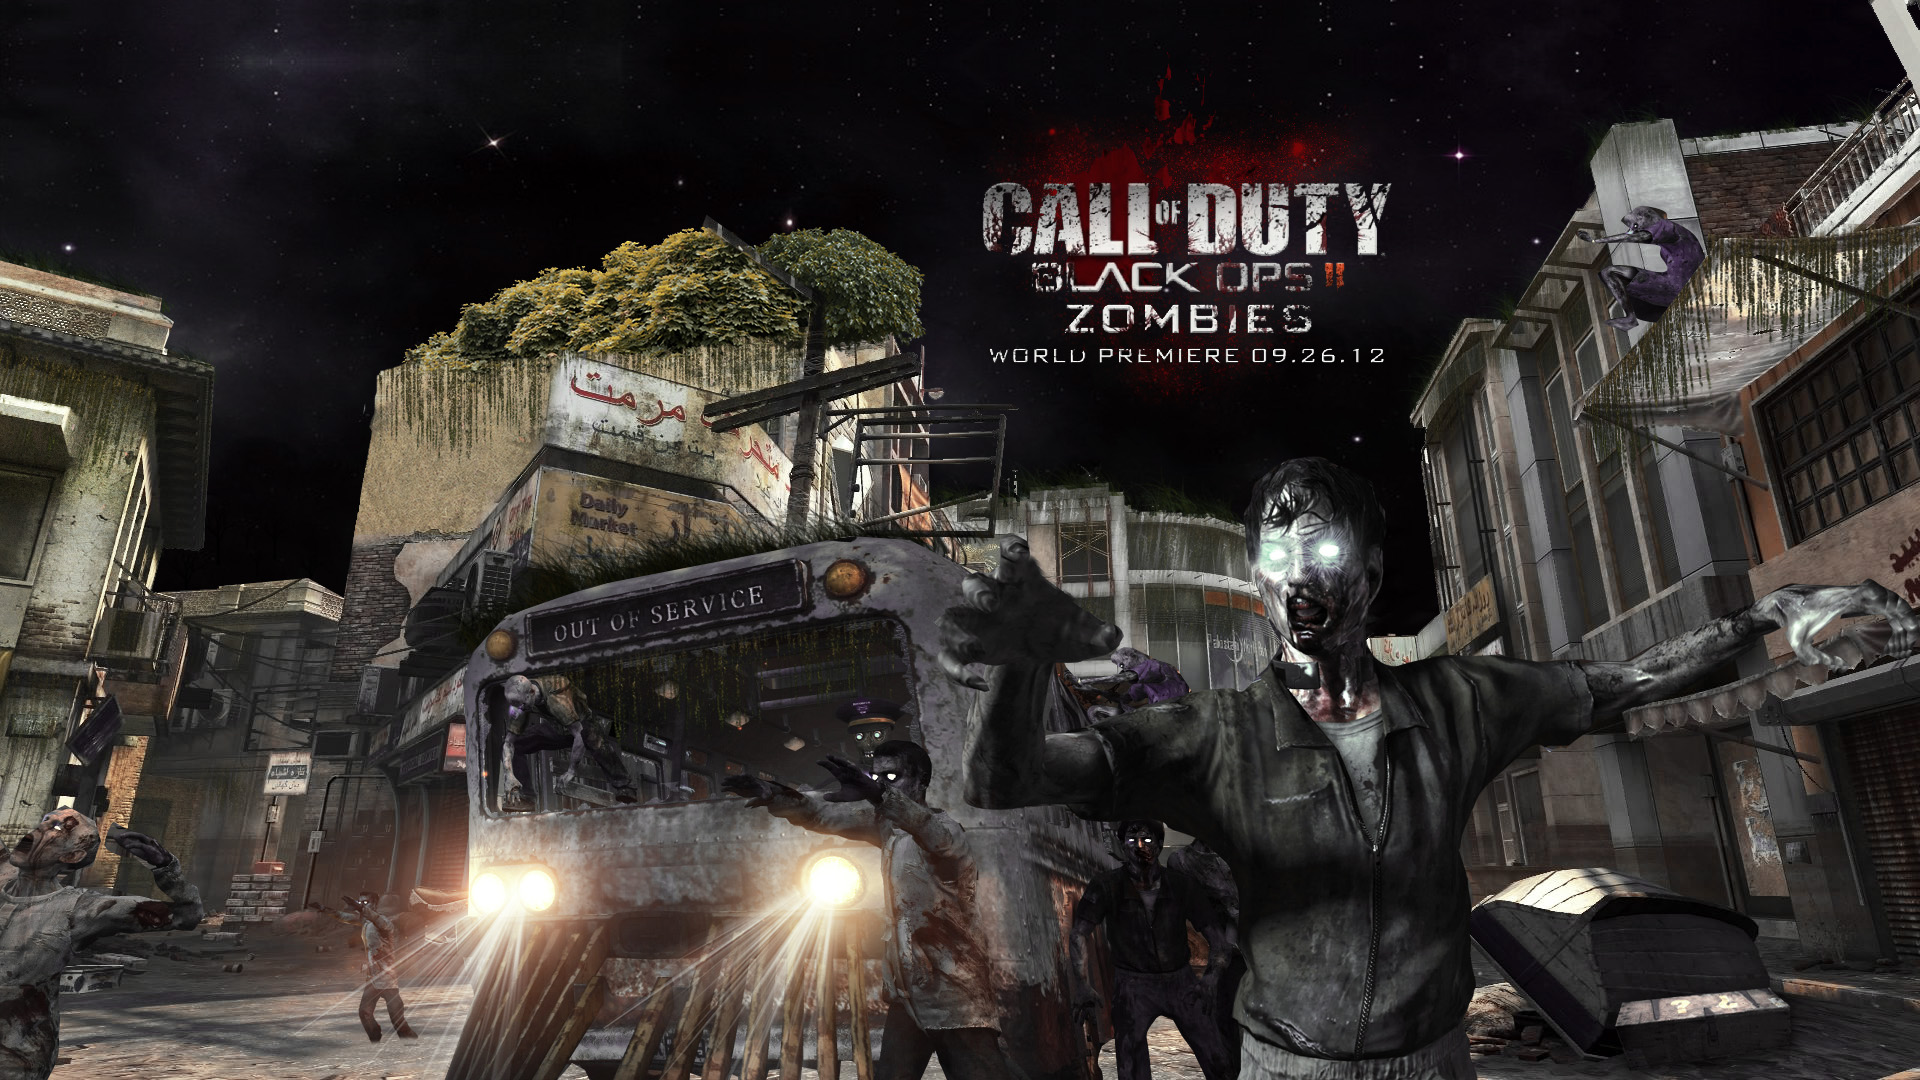 Call Of Duty Black Ops 2 Zombies Wallpapers Group (68+)